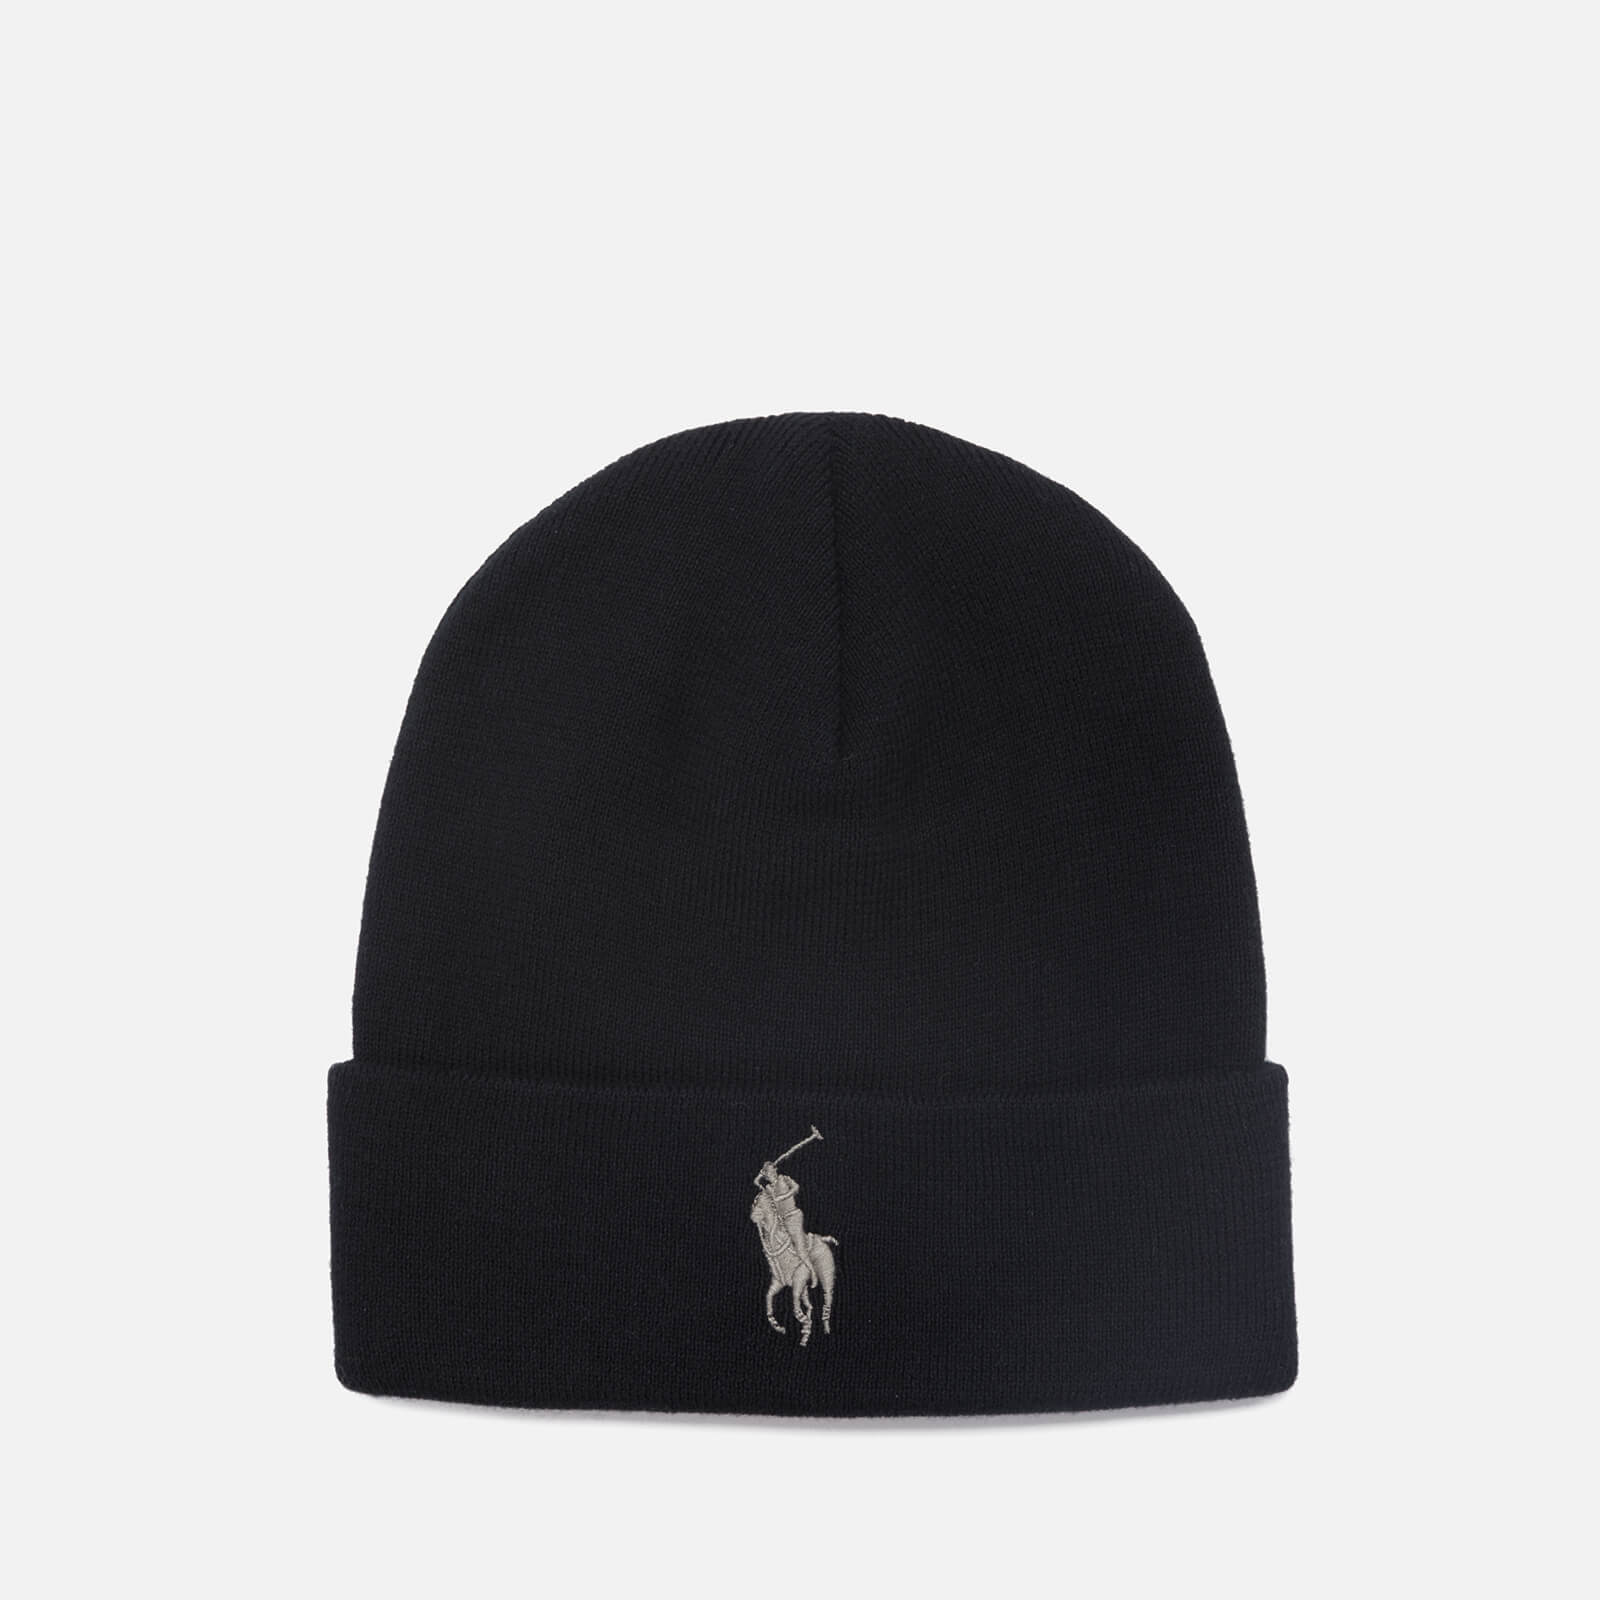 10f826c47d7 Polo Ralph Lauren Men s Cotton Beanie Hat - Black - Free UK Delivery over  £50